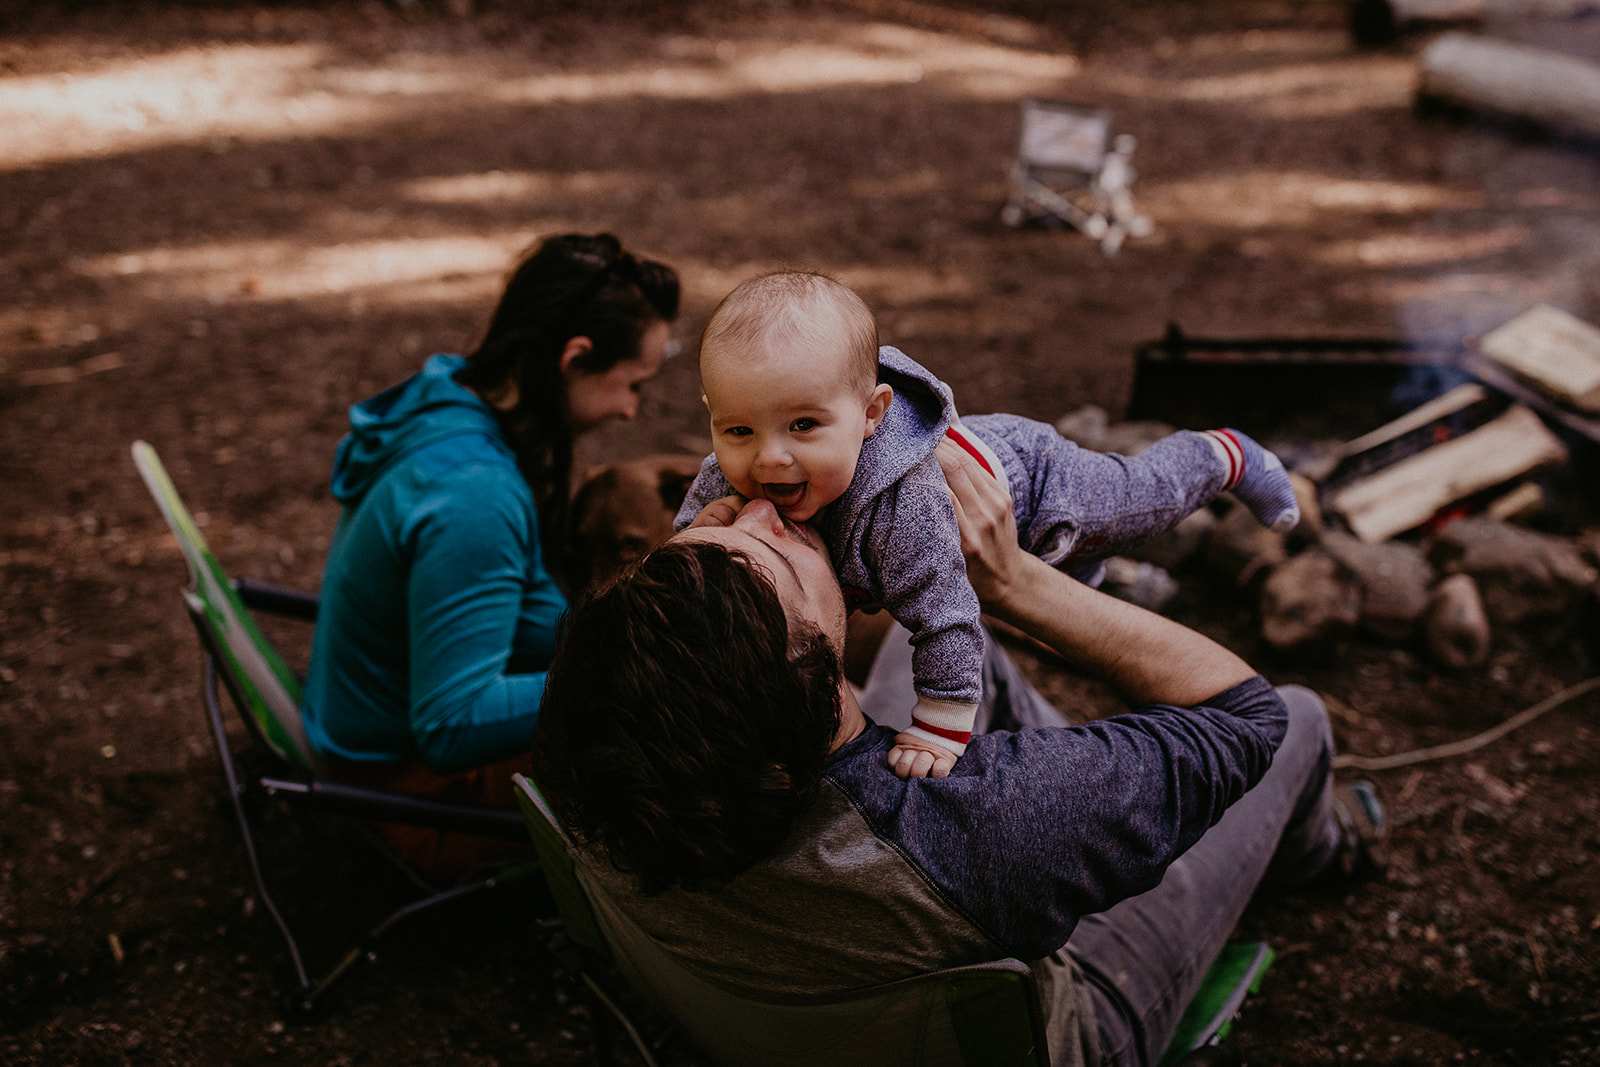 kachess-lake-camping-family-portraits-megan-gallagher-photography_(26_of_335).jpg